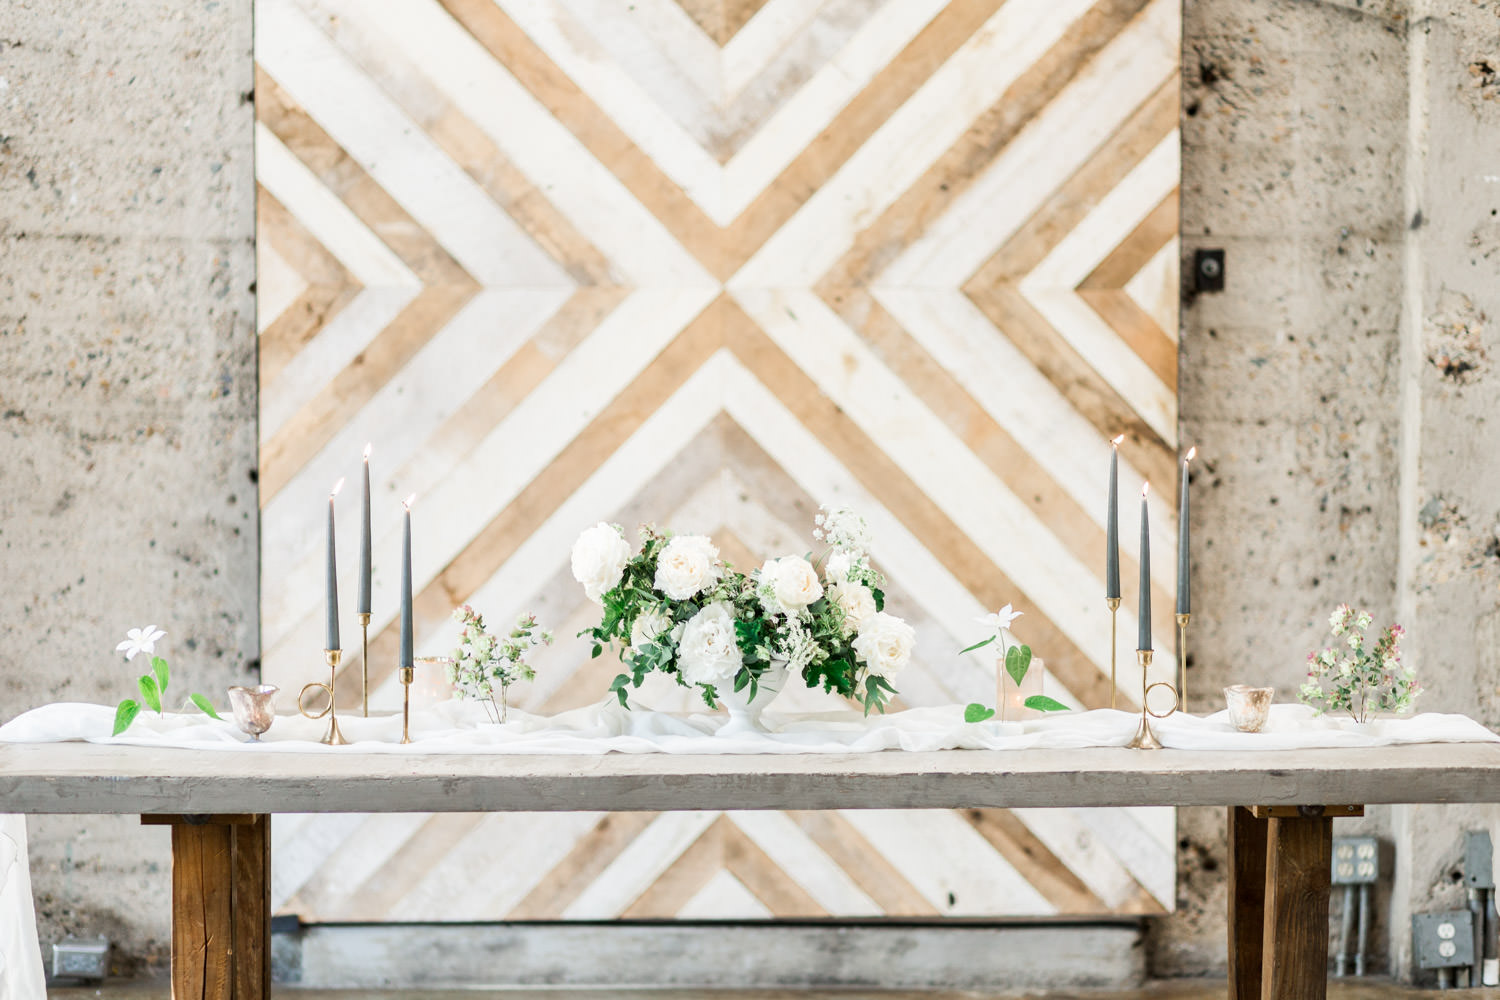 Wedding Reception Tablescapes at Luce Loft: 3 Different Designs